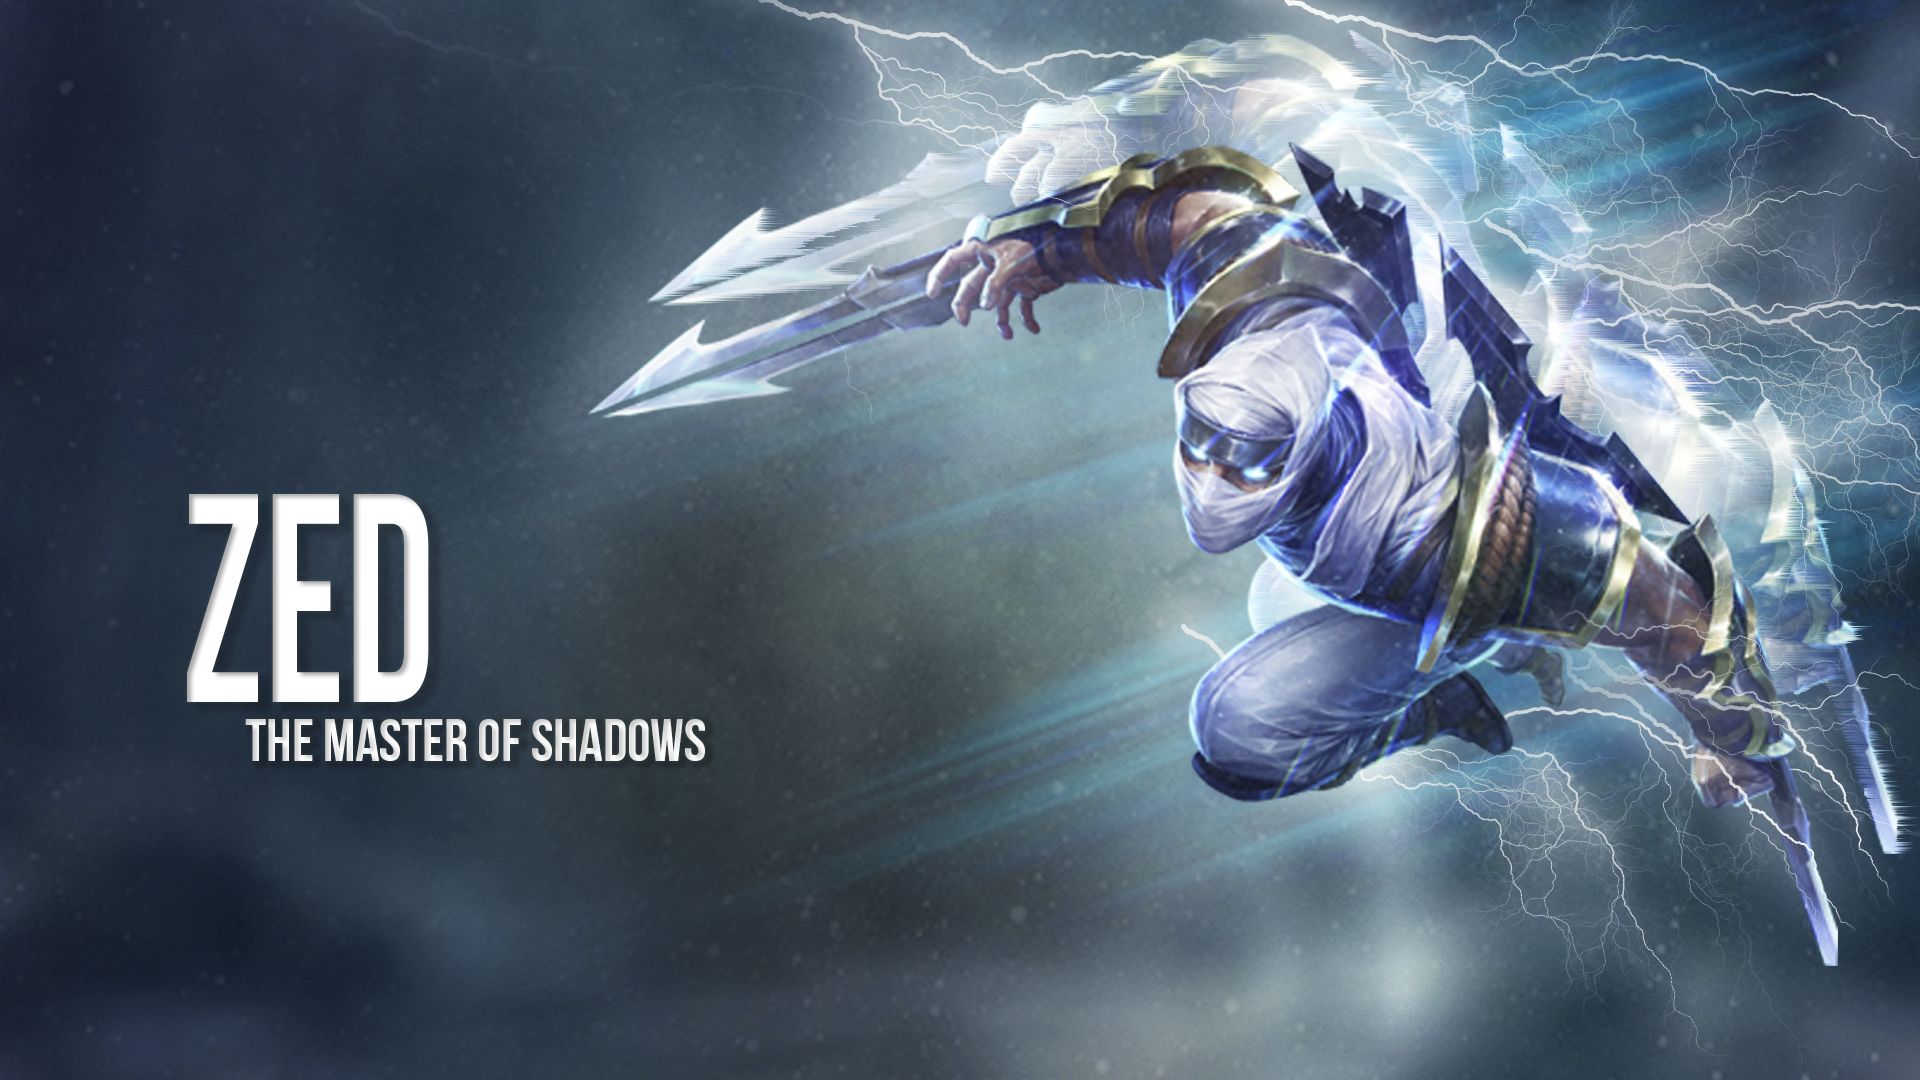 Zed, the master of shadows (october 15th, 2013)